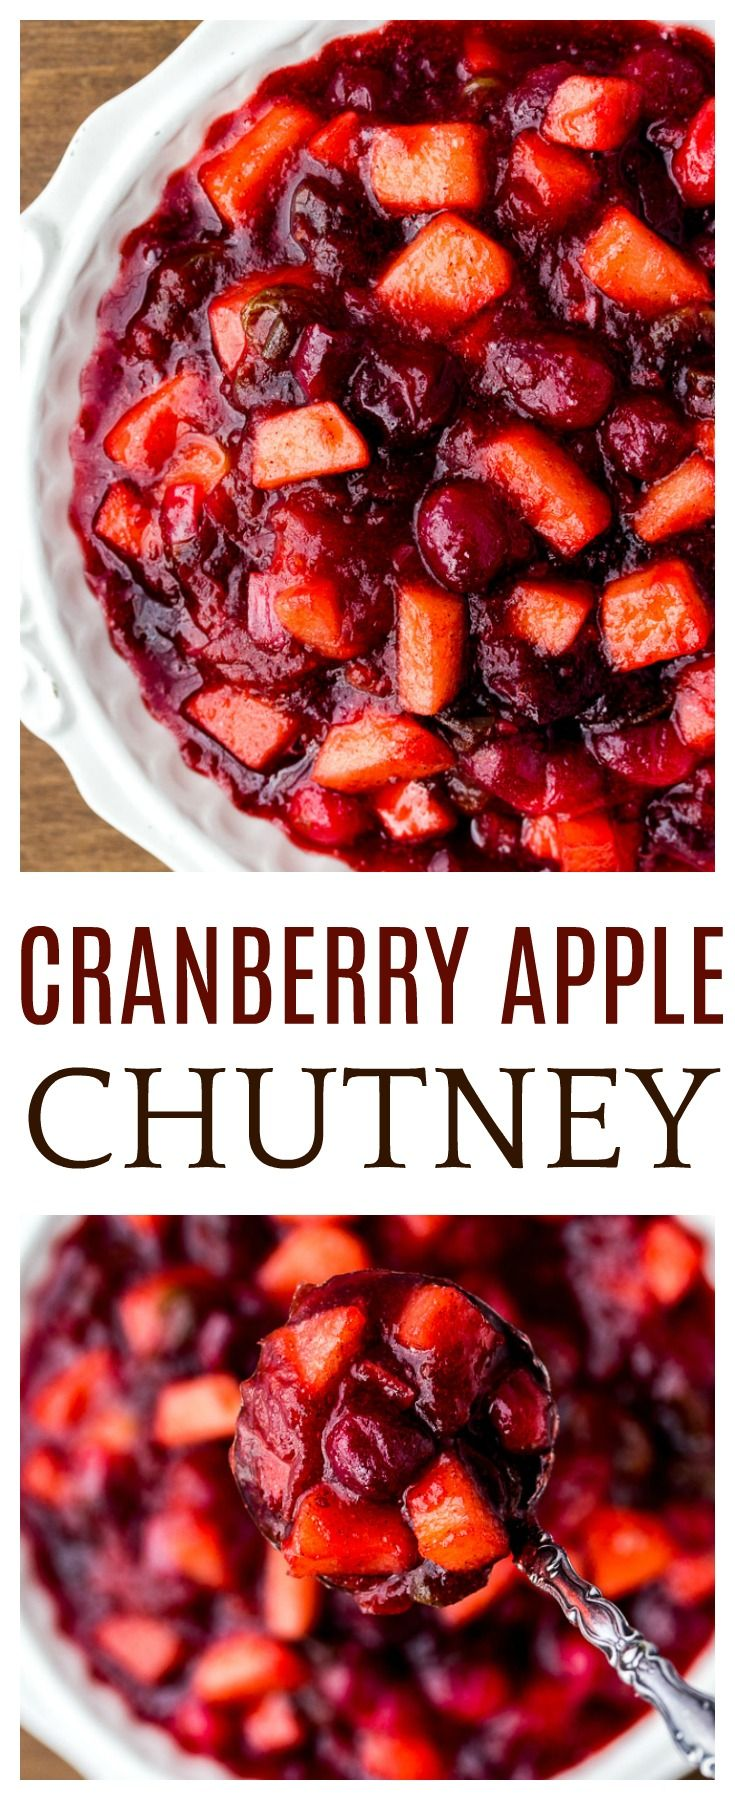 Cranberry Apple Chutney - Delicious Little Bites